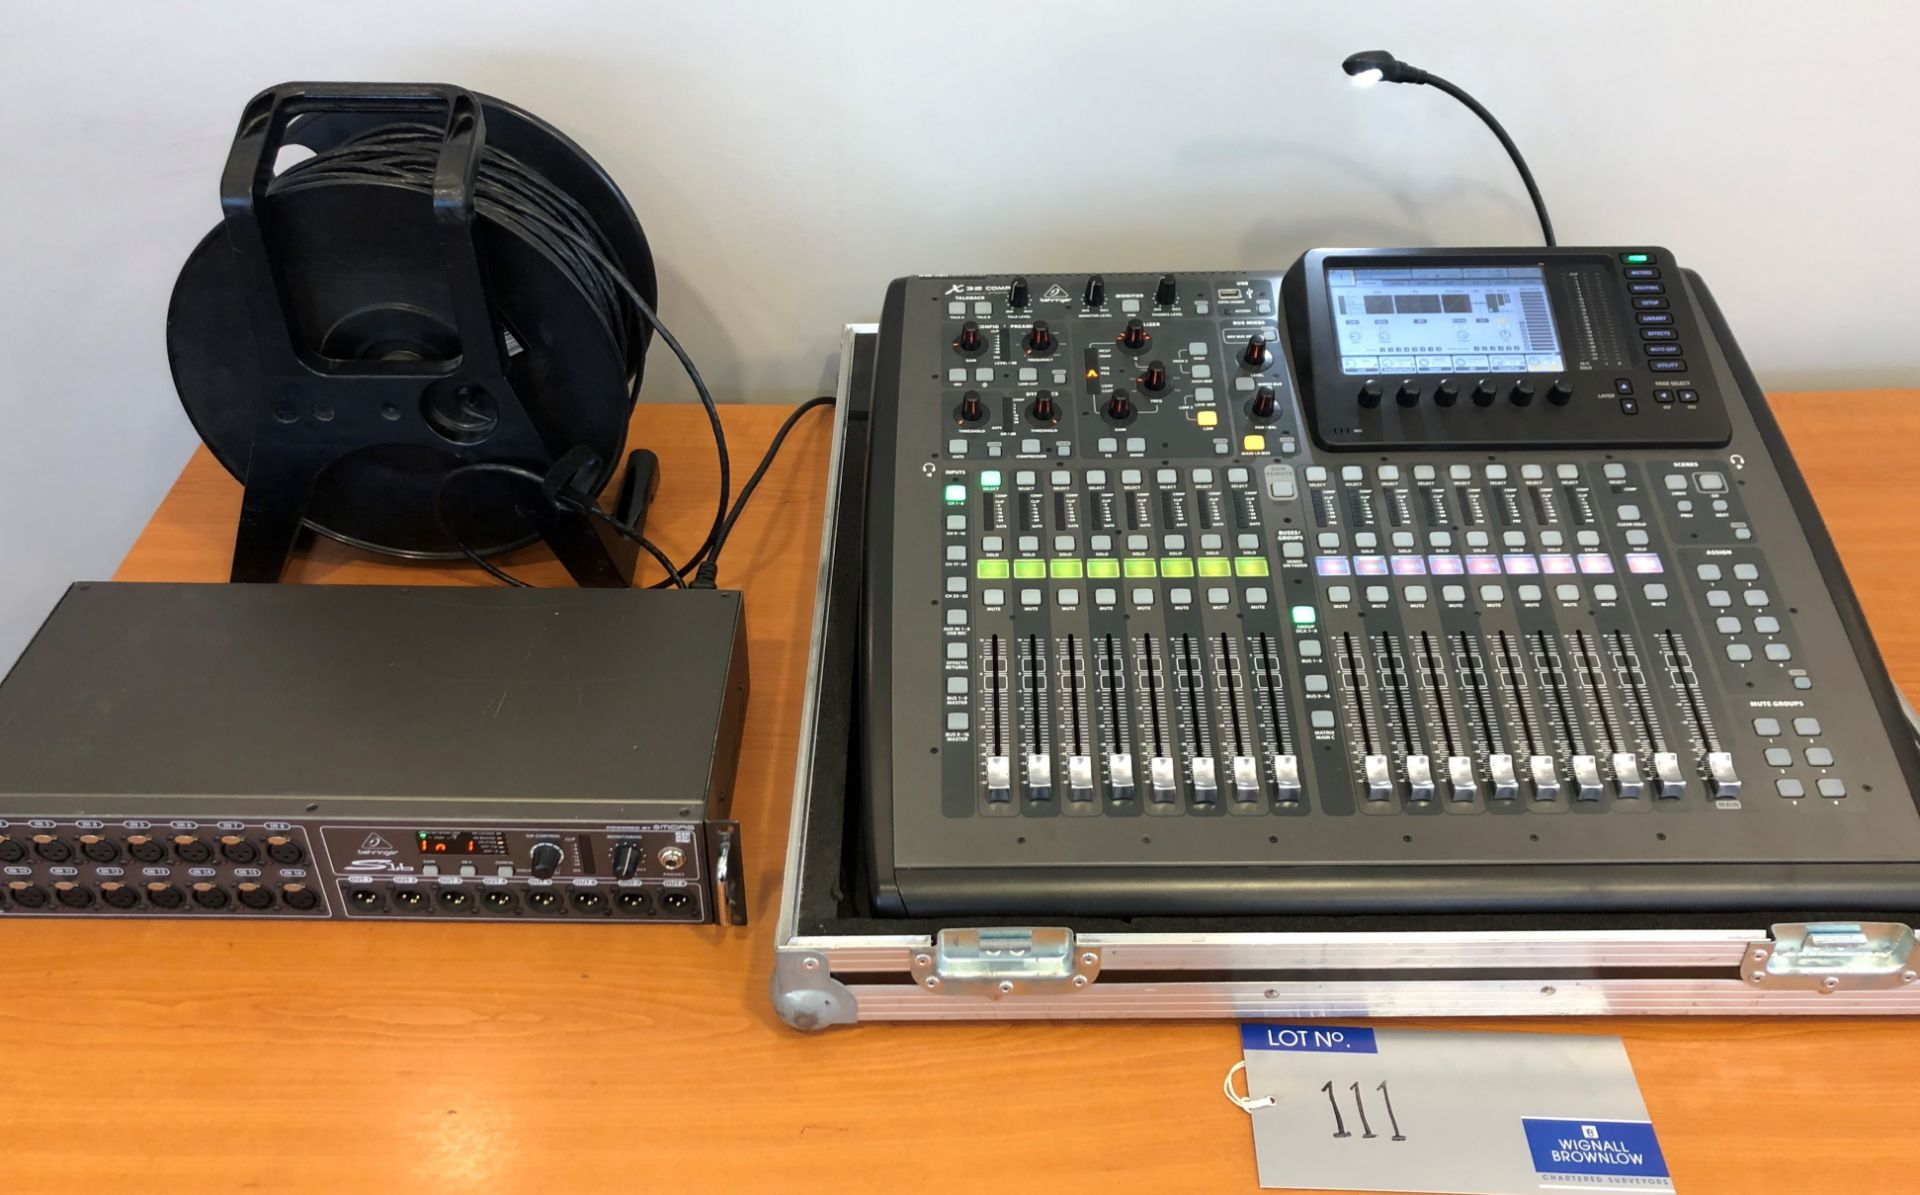 A Behringer Midas X32 Compact Digital Mixing Console with Behringer Midas S16 I/O Stage Box, 50m